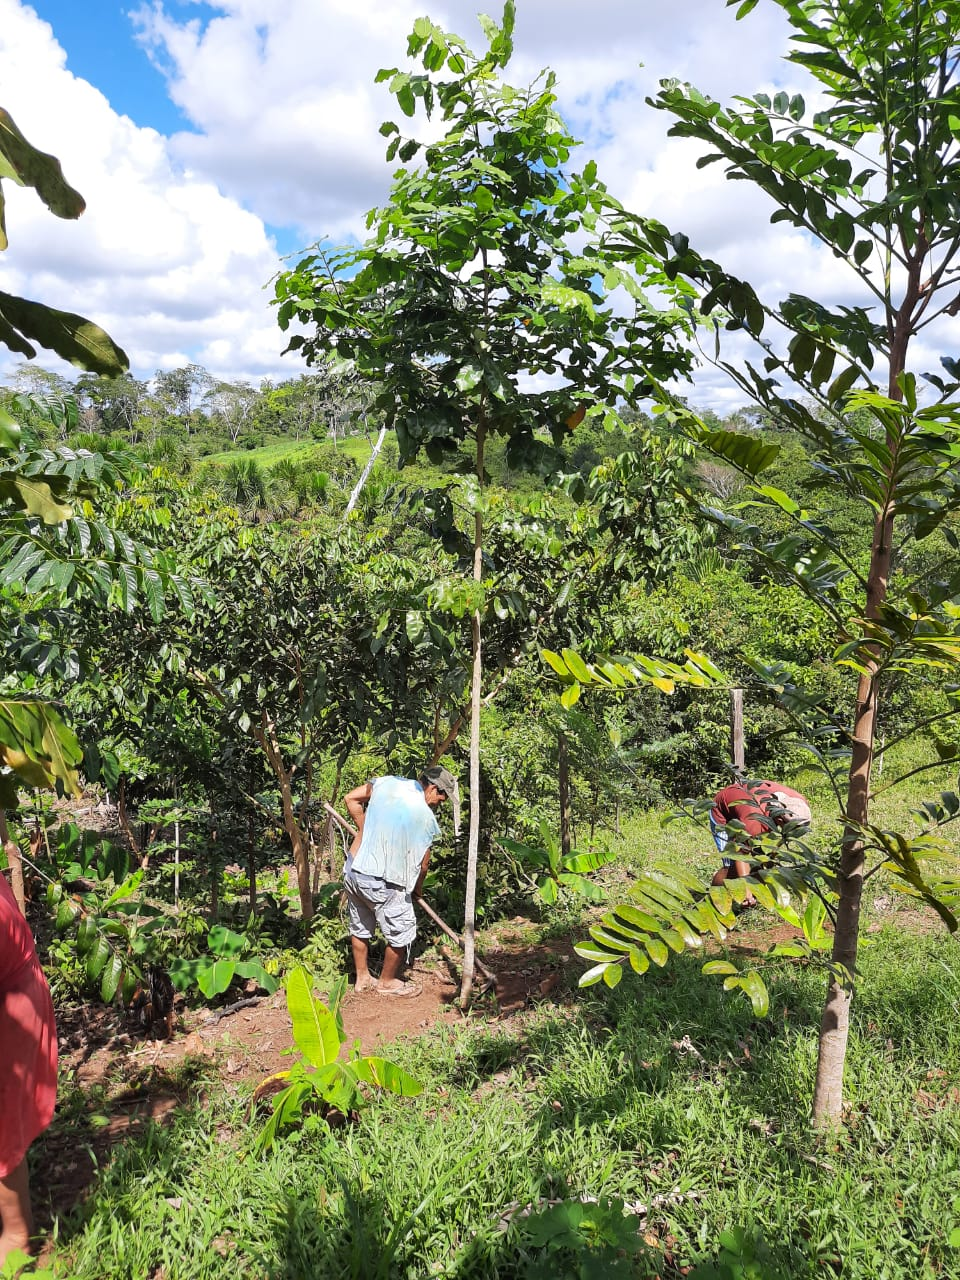 plant-a-tree-planting-charity-native-amazon-rainforest-reforestation-agroforestry-peru-plant-your-future-13